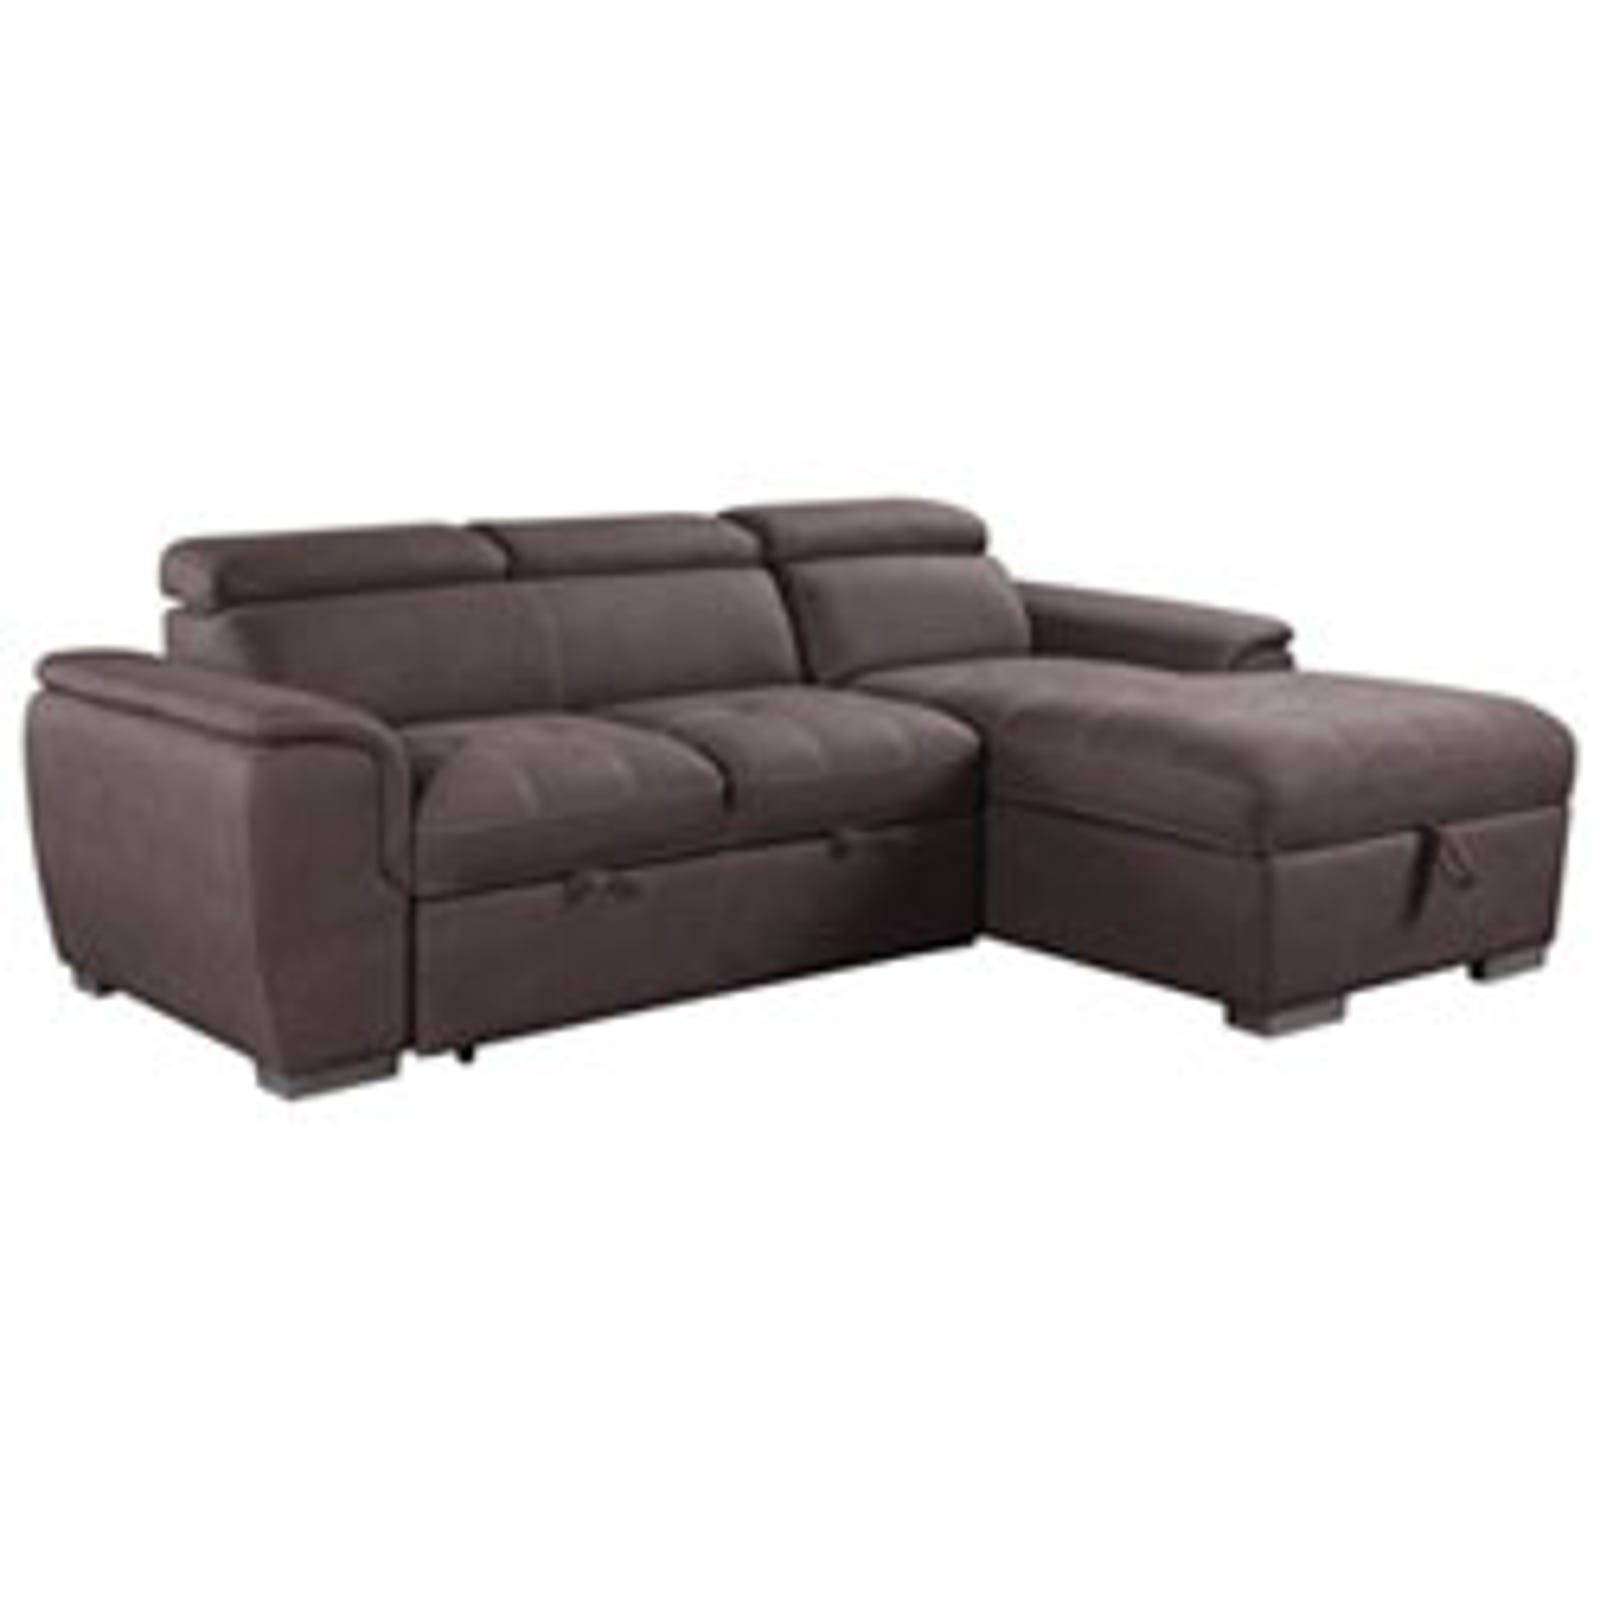 Cheap Sectional Sofas Leather Awesome Home